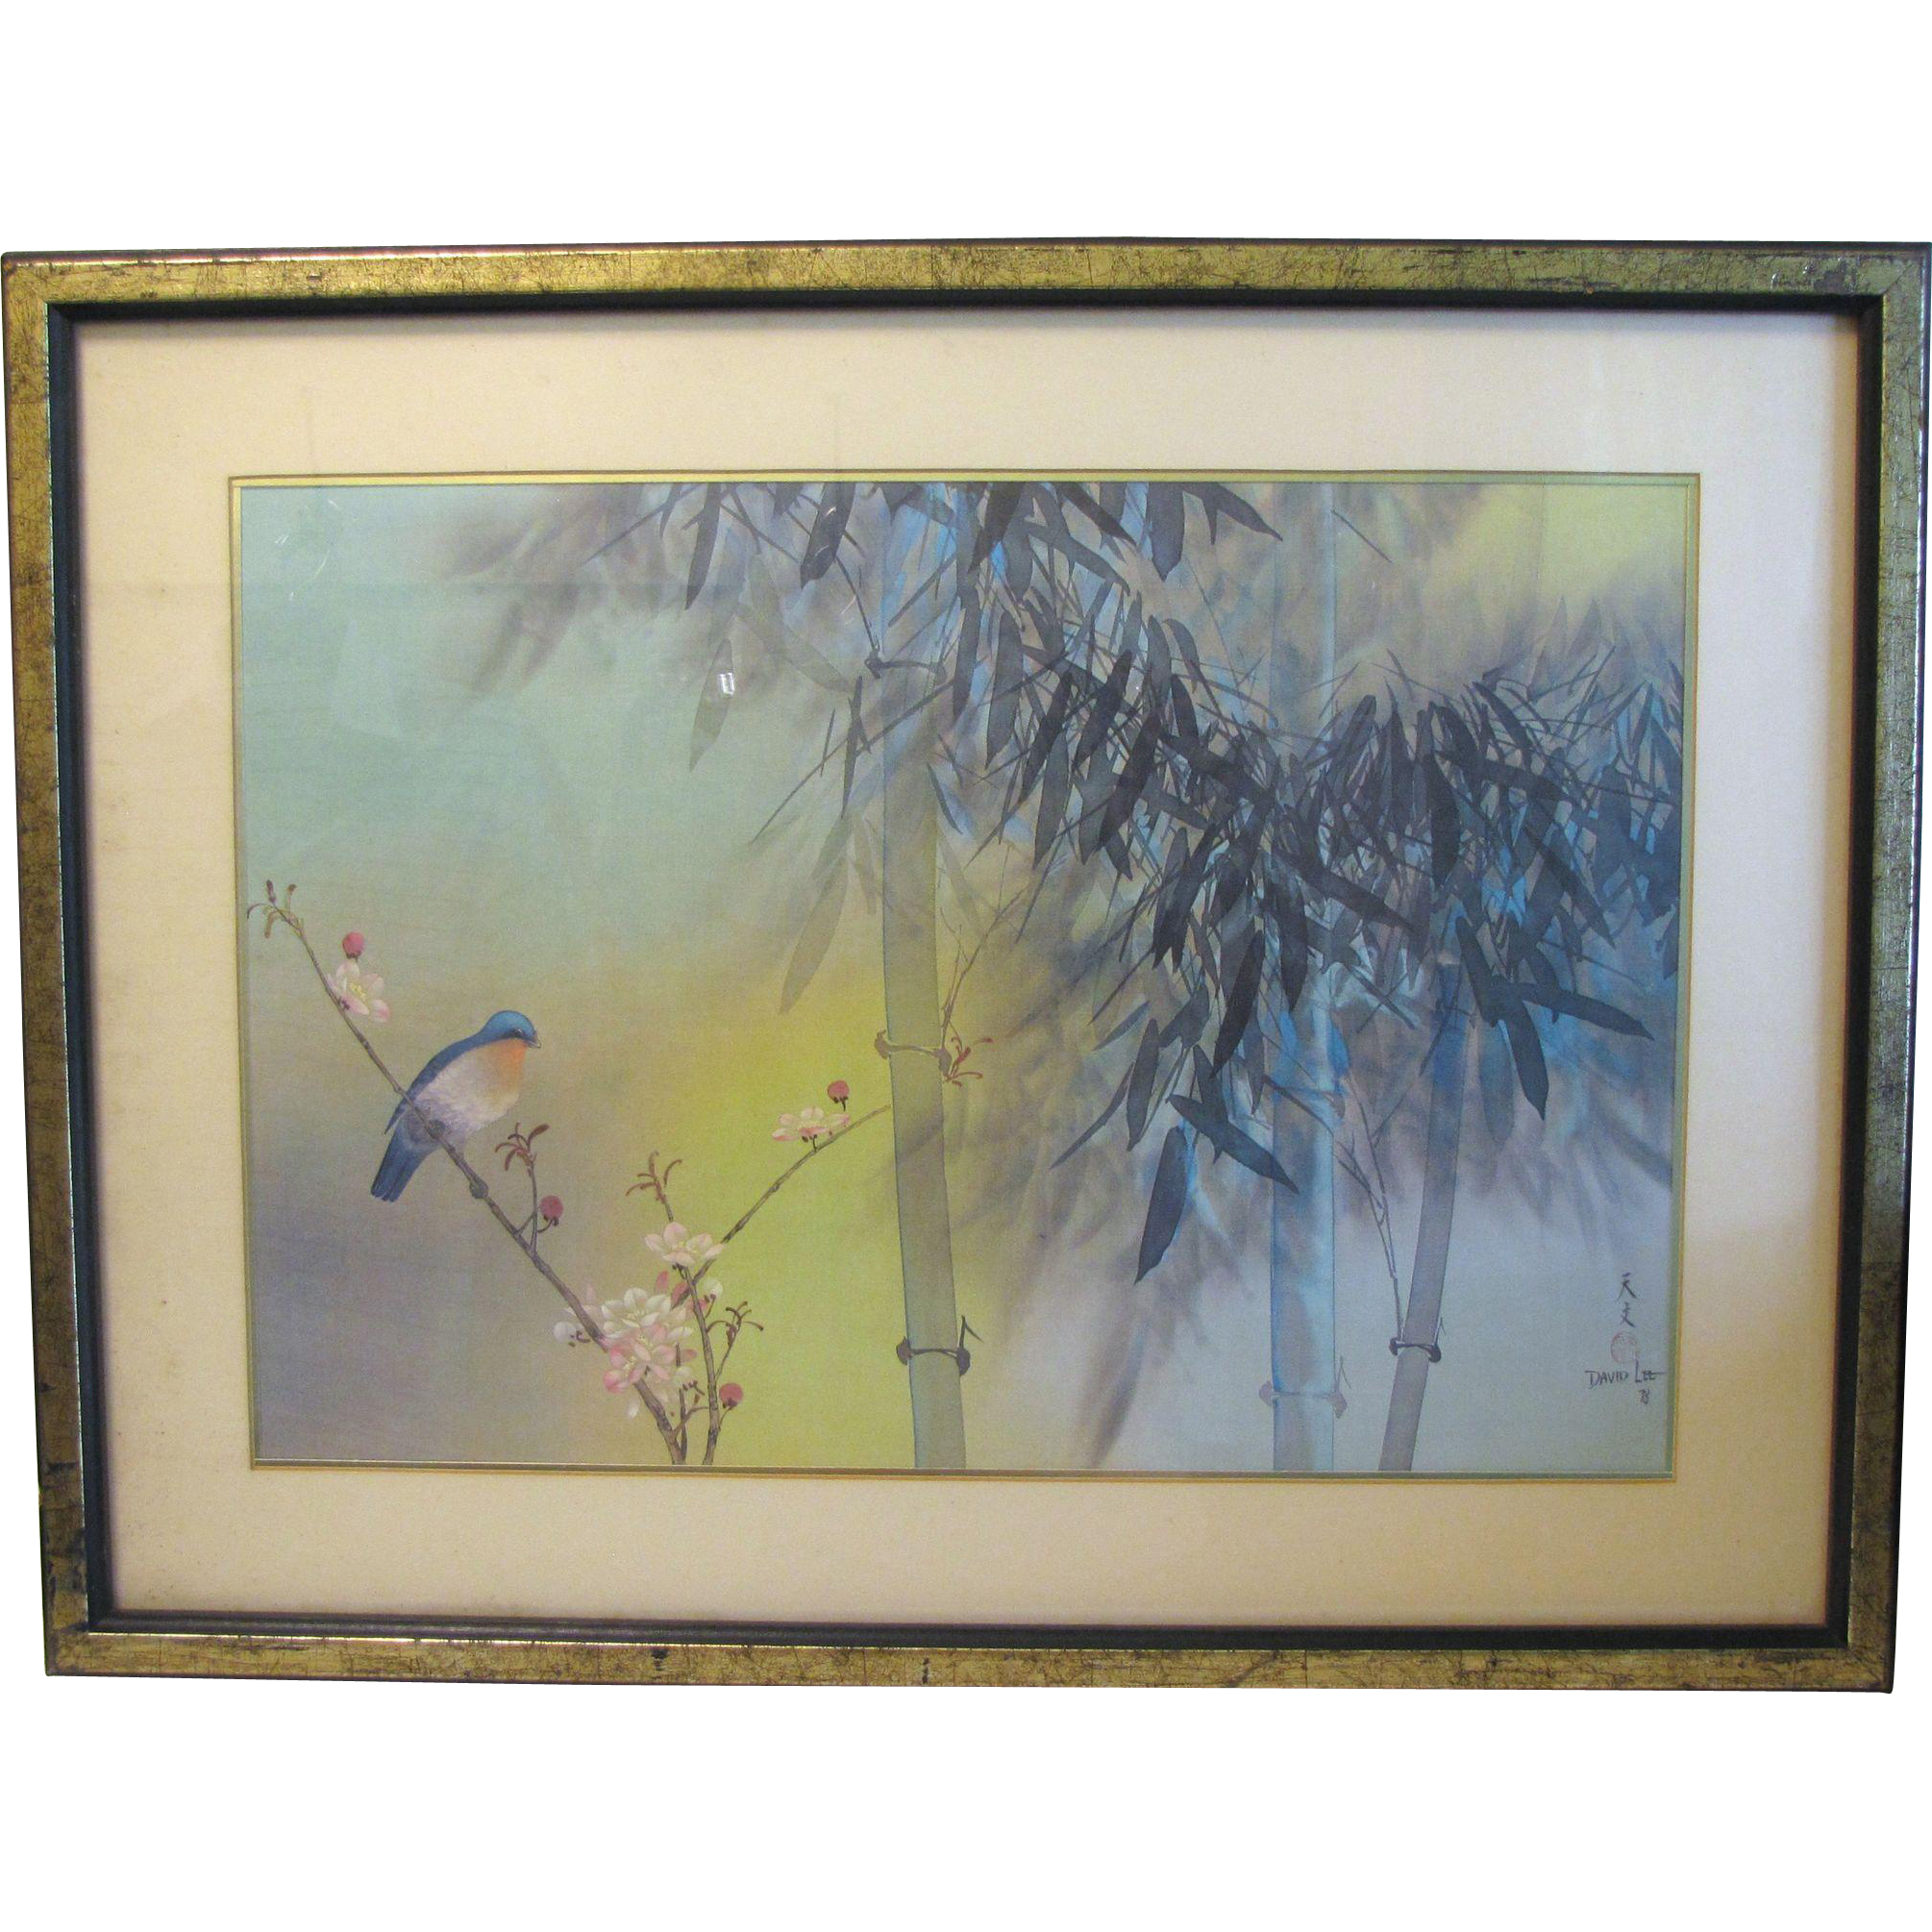 Gorgeous David Lee Print, Spring Bamboo, Framed & Matted, 1978